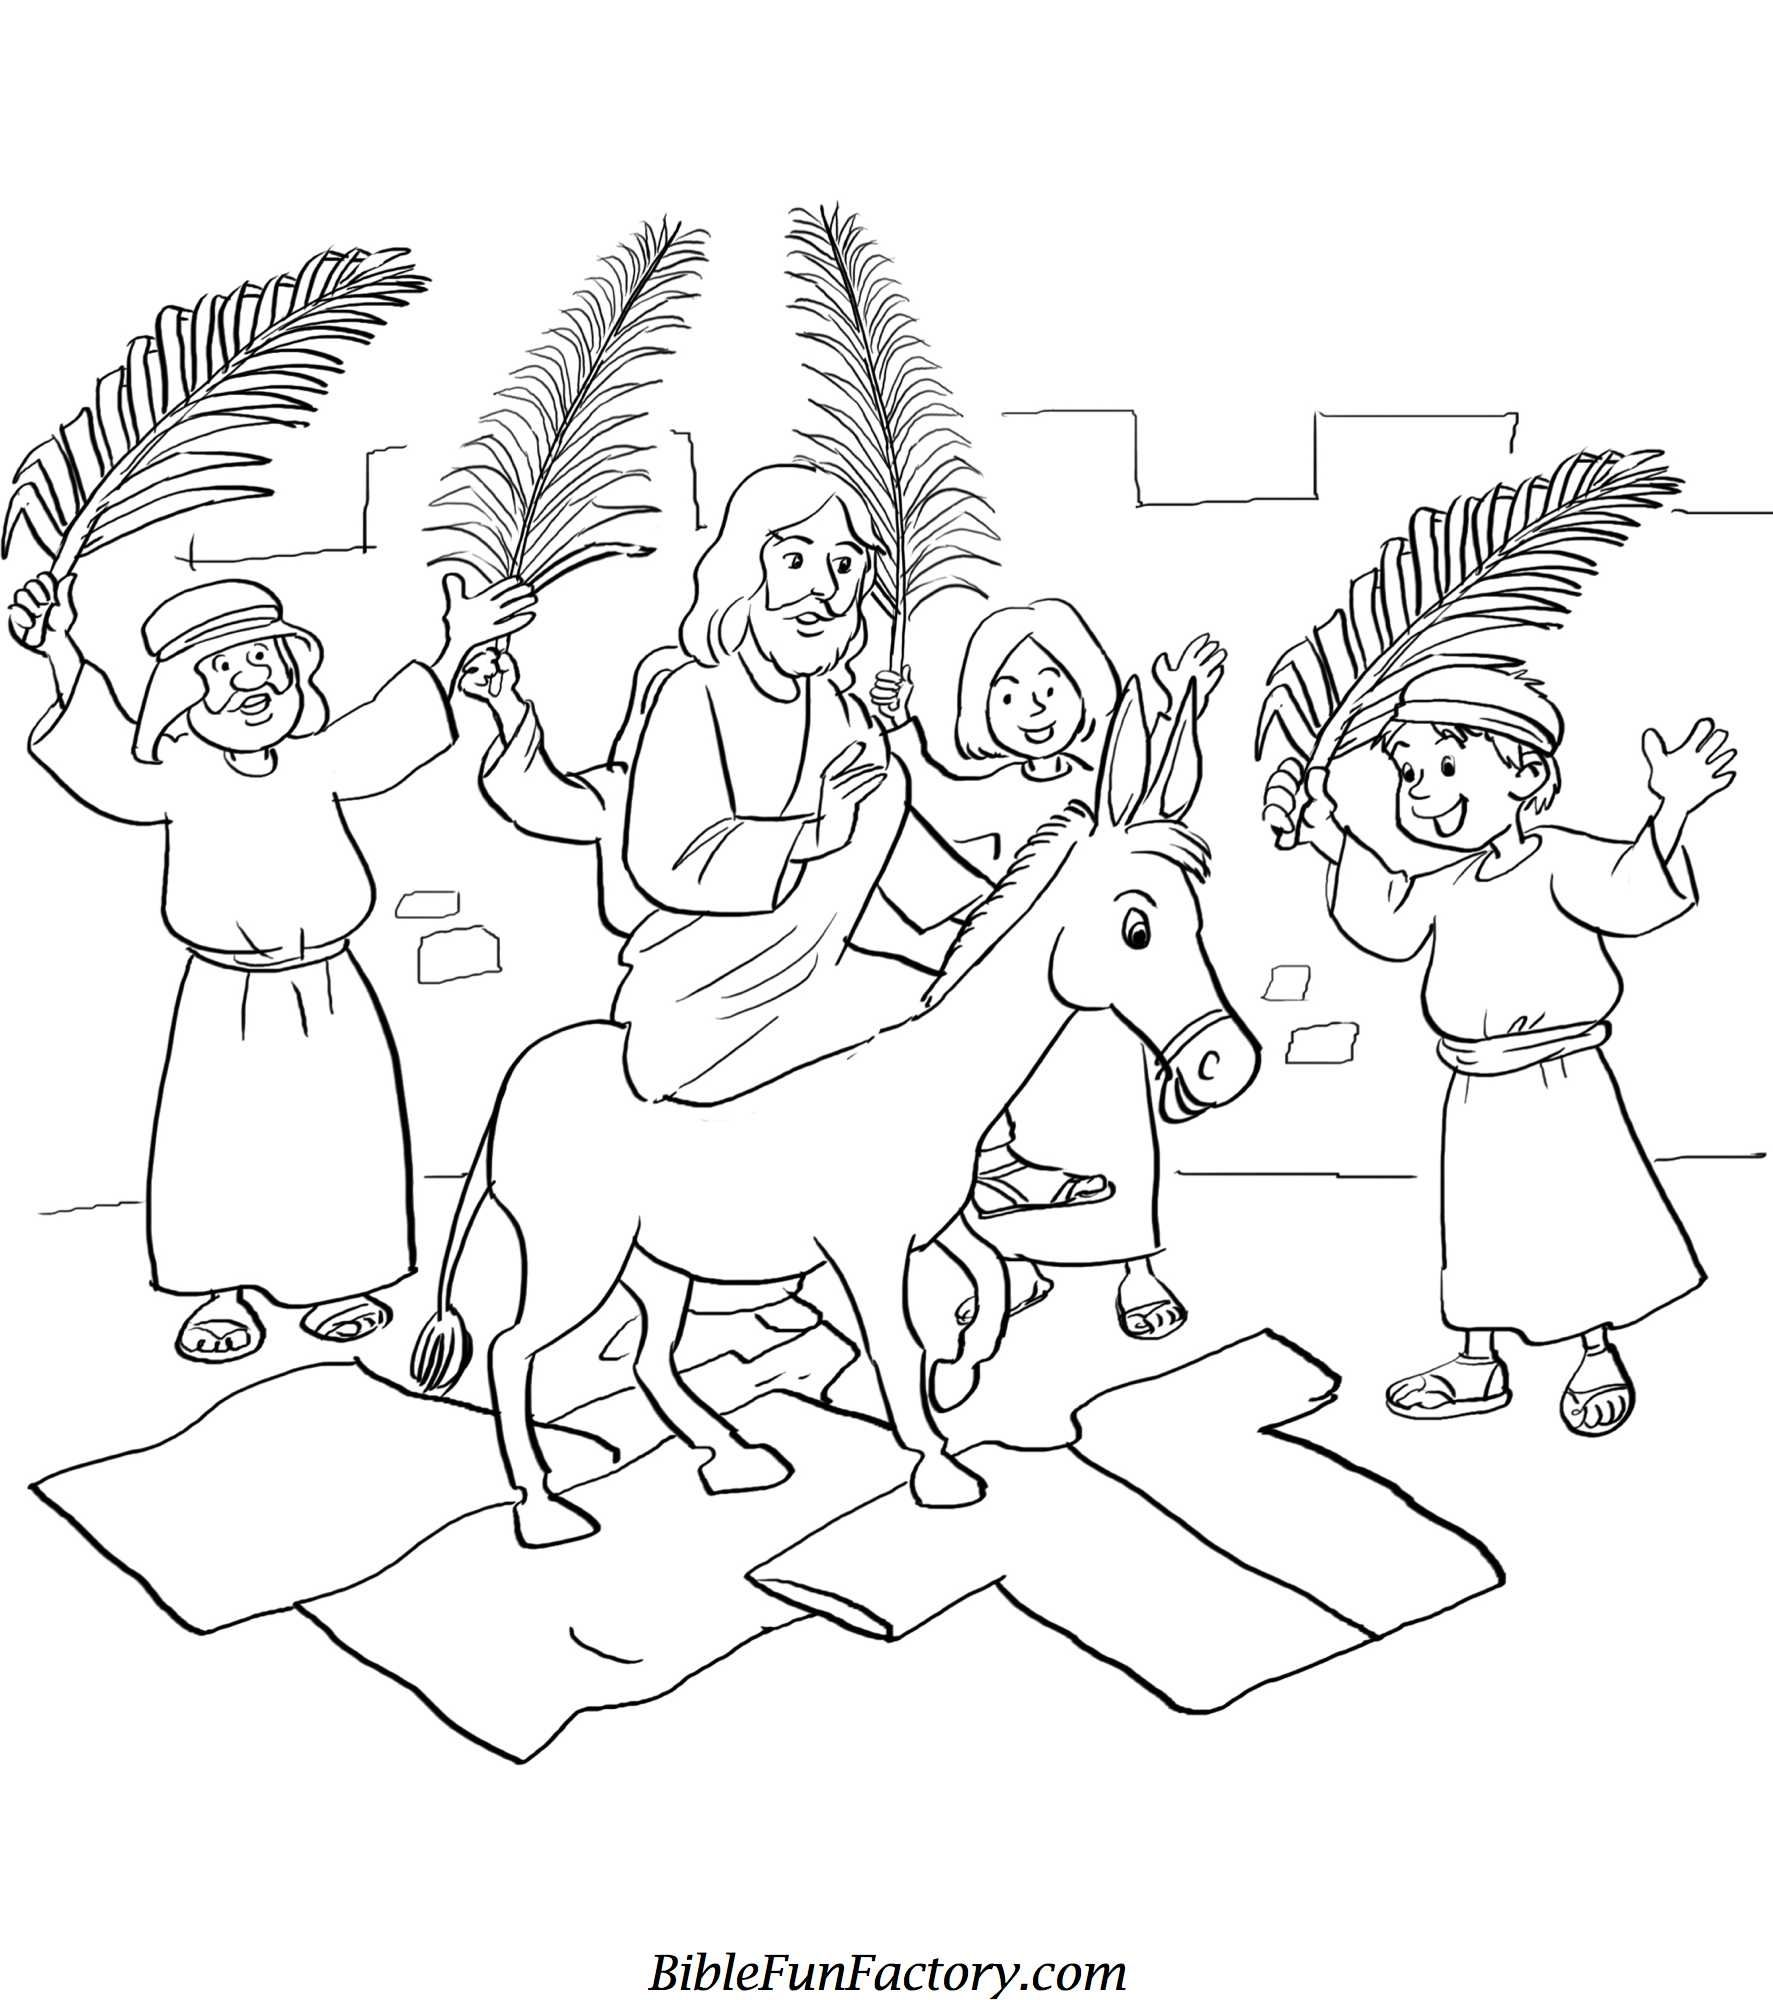 Free coloring pages bible - Free Palm Sunday Coloring Sheets Bible Lessons Games And Activities Biblefunfactory Com